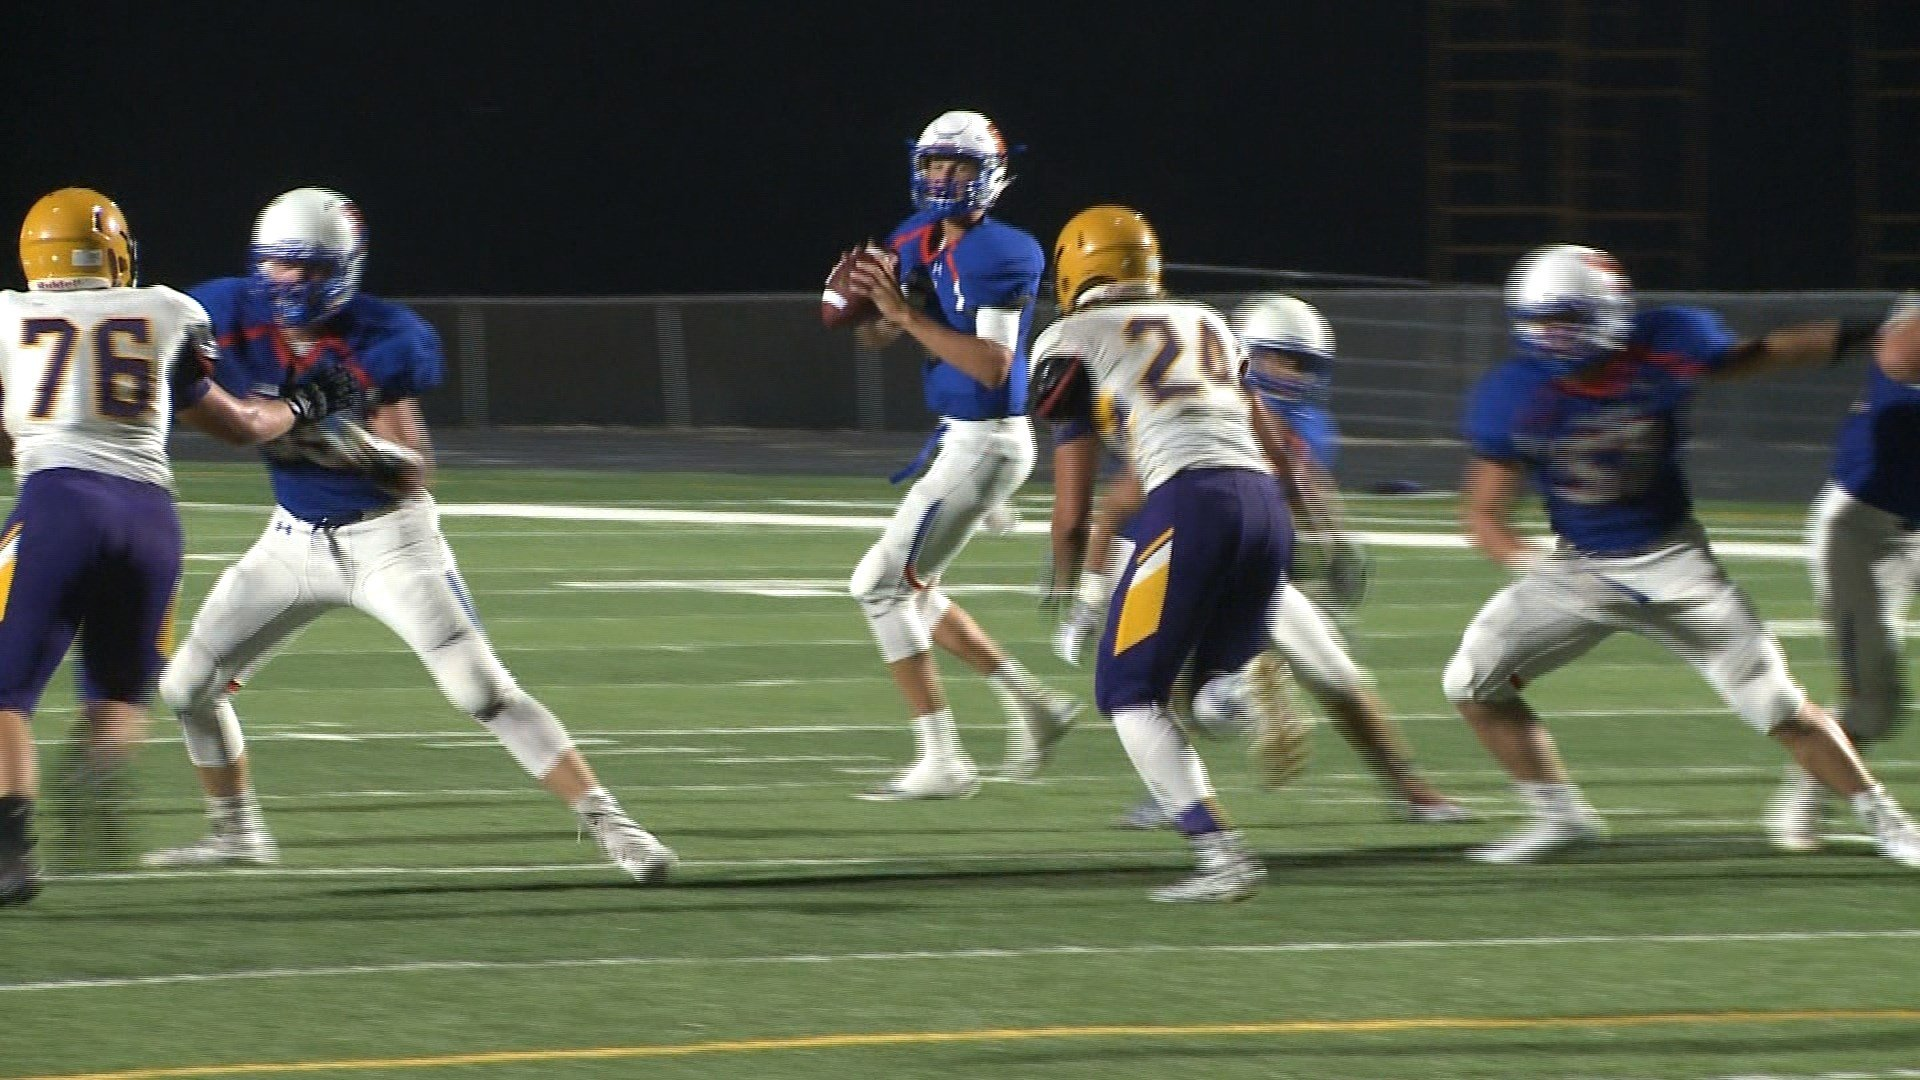 Sioux Center is ranked fourth in Class 2A in the new AP Iowa high school football poll.